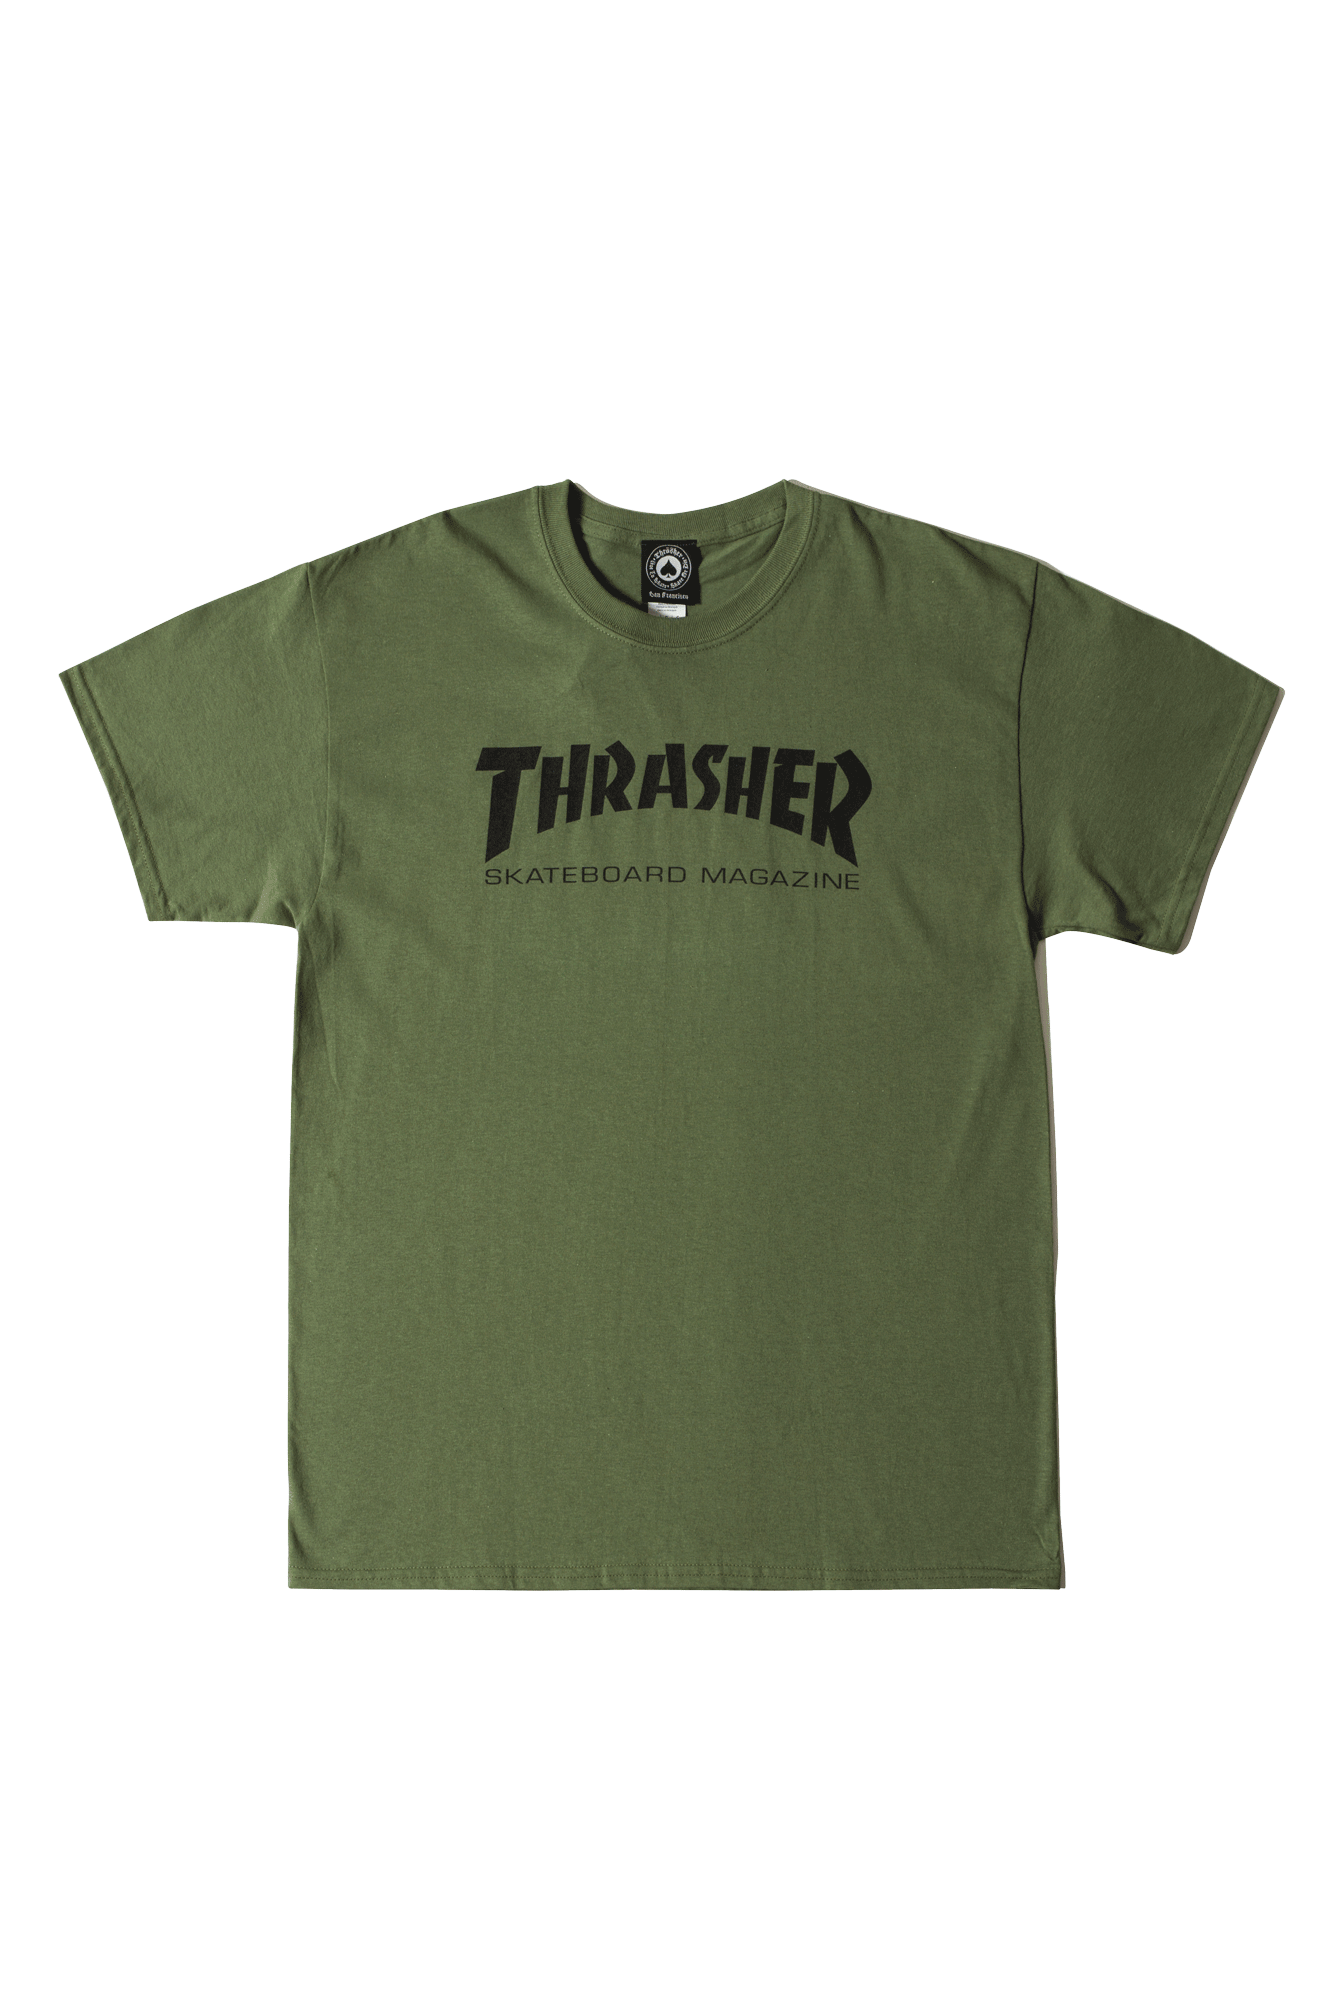 Thrasher T-Shirts Skate Mag Verde 311027#000#GREEN#S - One Block Down